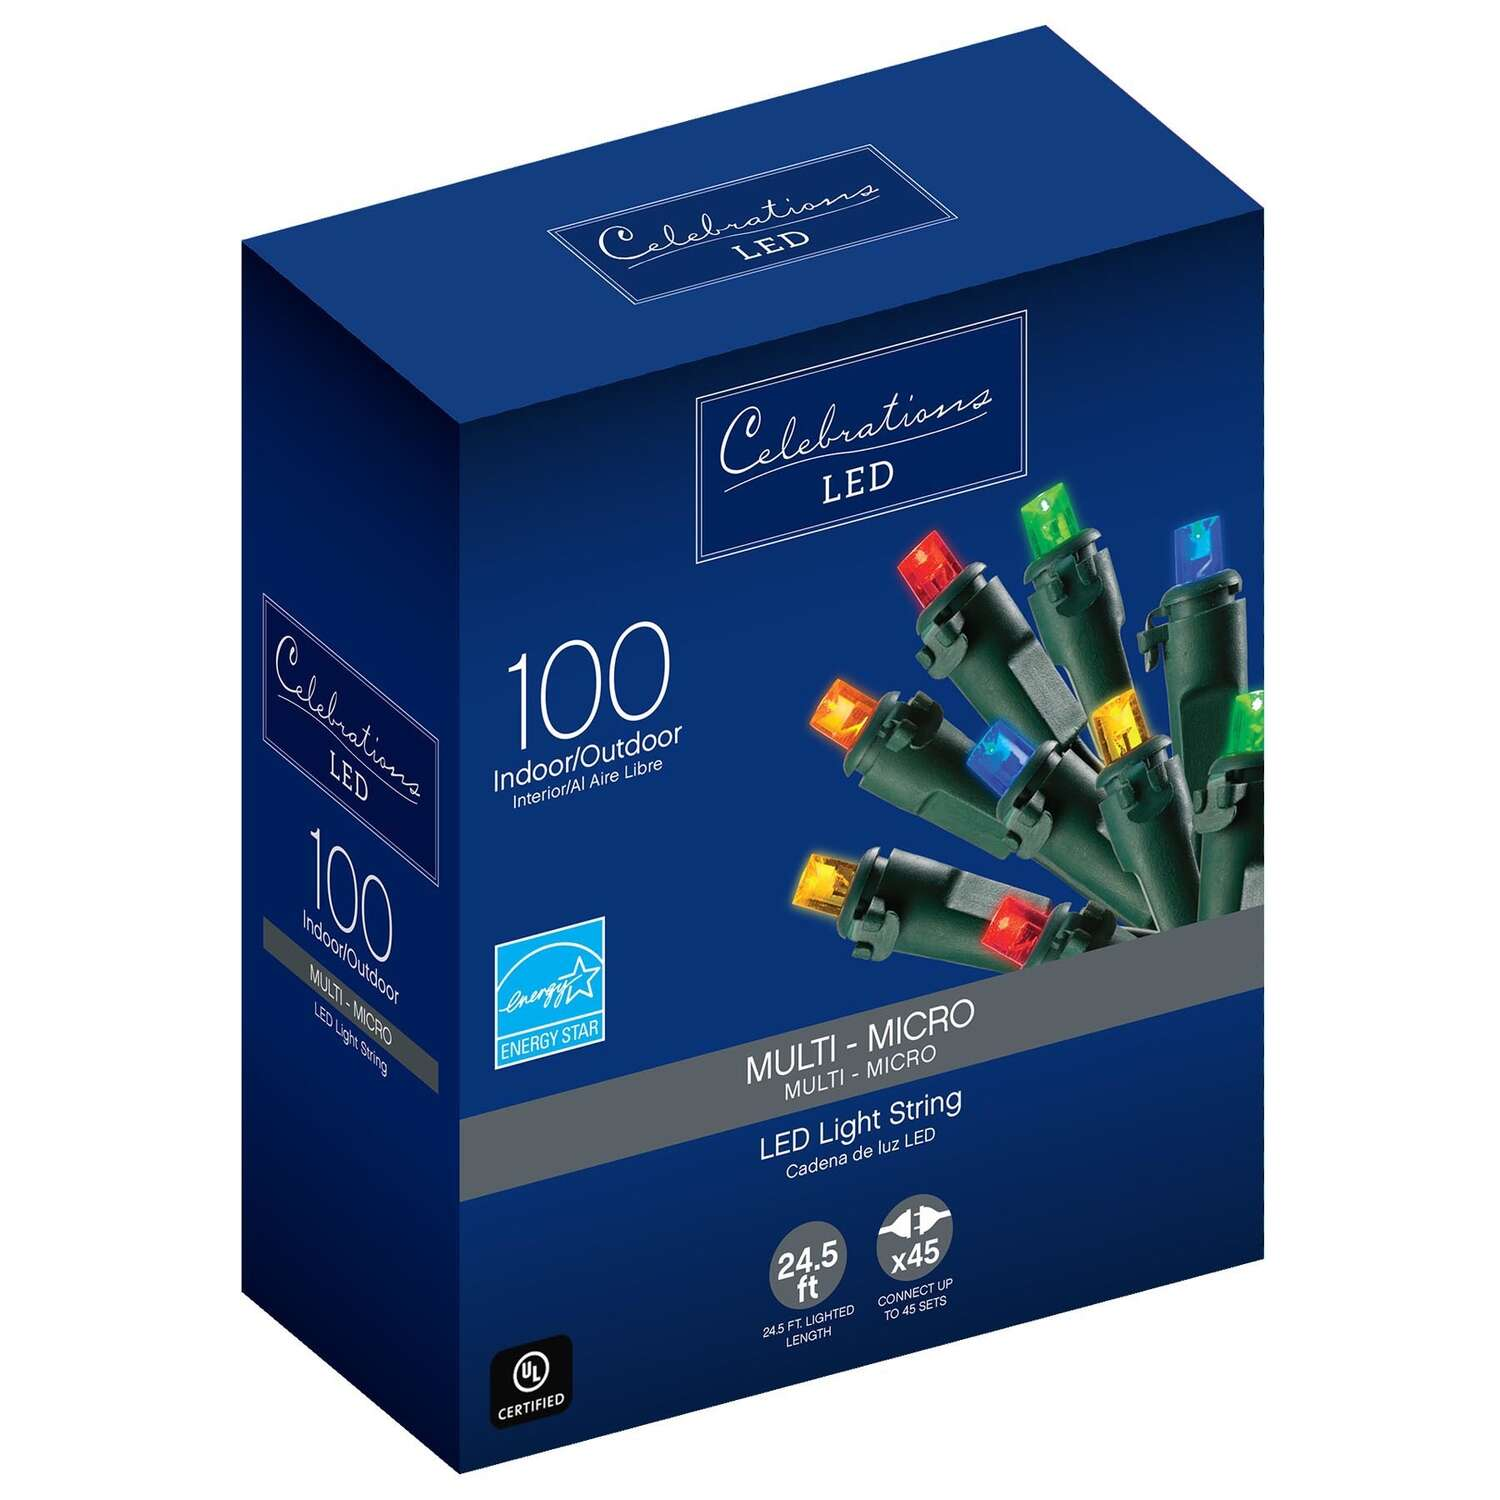 Celebrations  LED  Multi-color  100 count String  Christmas Lights  24.75 ft.